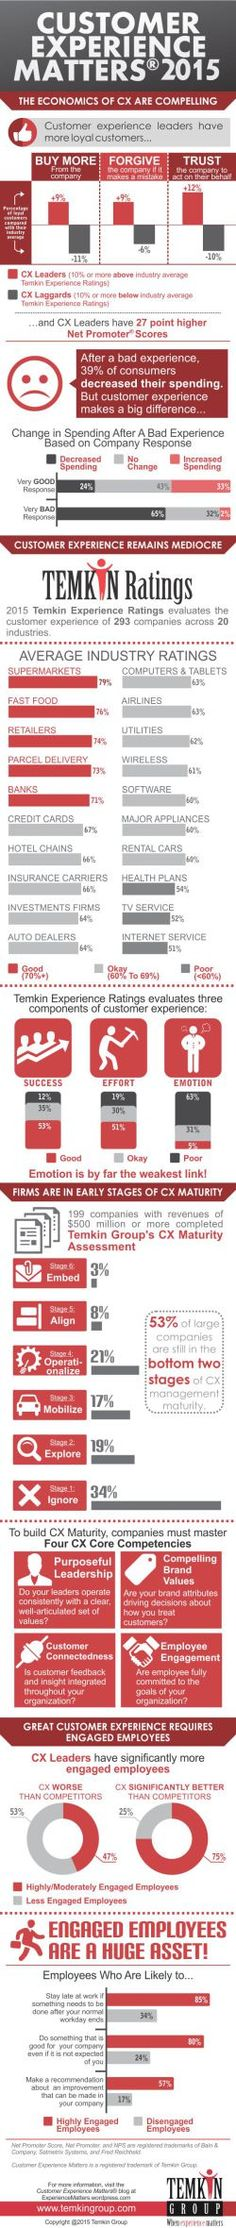 The Ultimate Customer Experience Infographic, 2015 | Customer Experience Matters